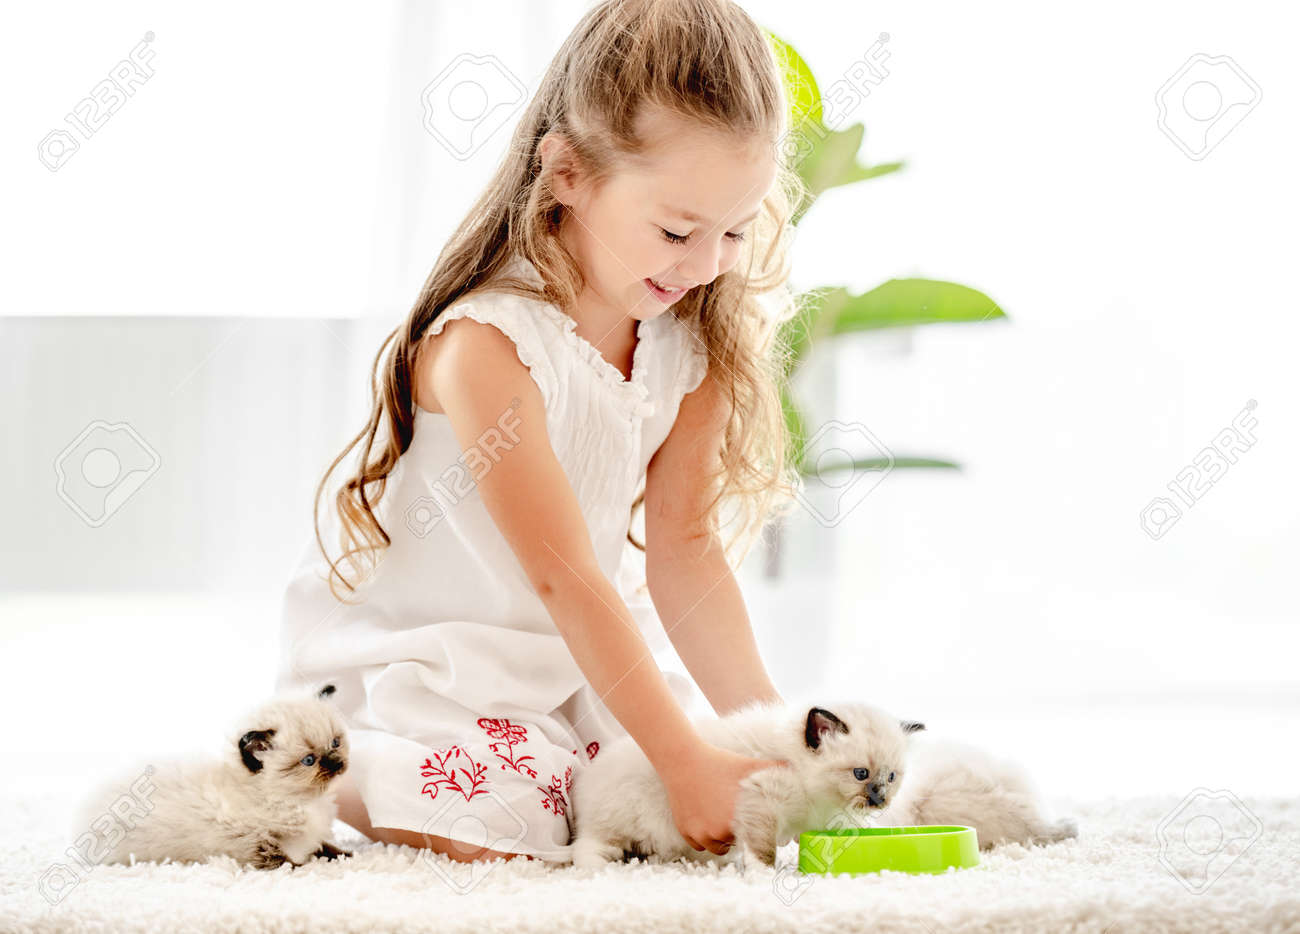 Girl with ragdoll kittens - 173455737